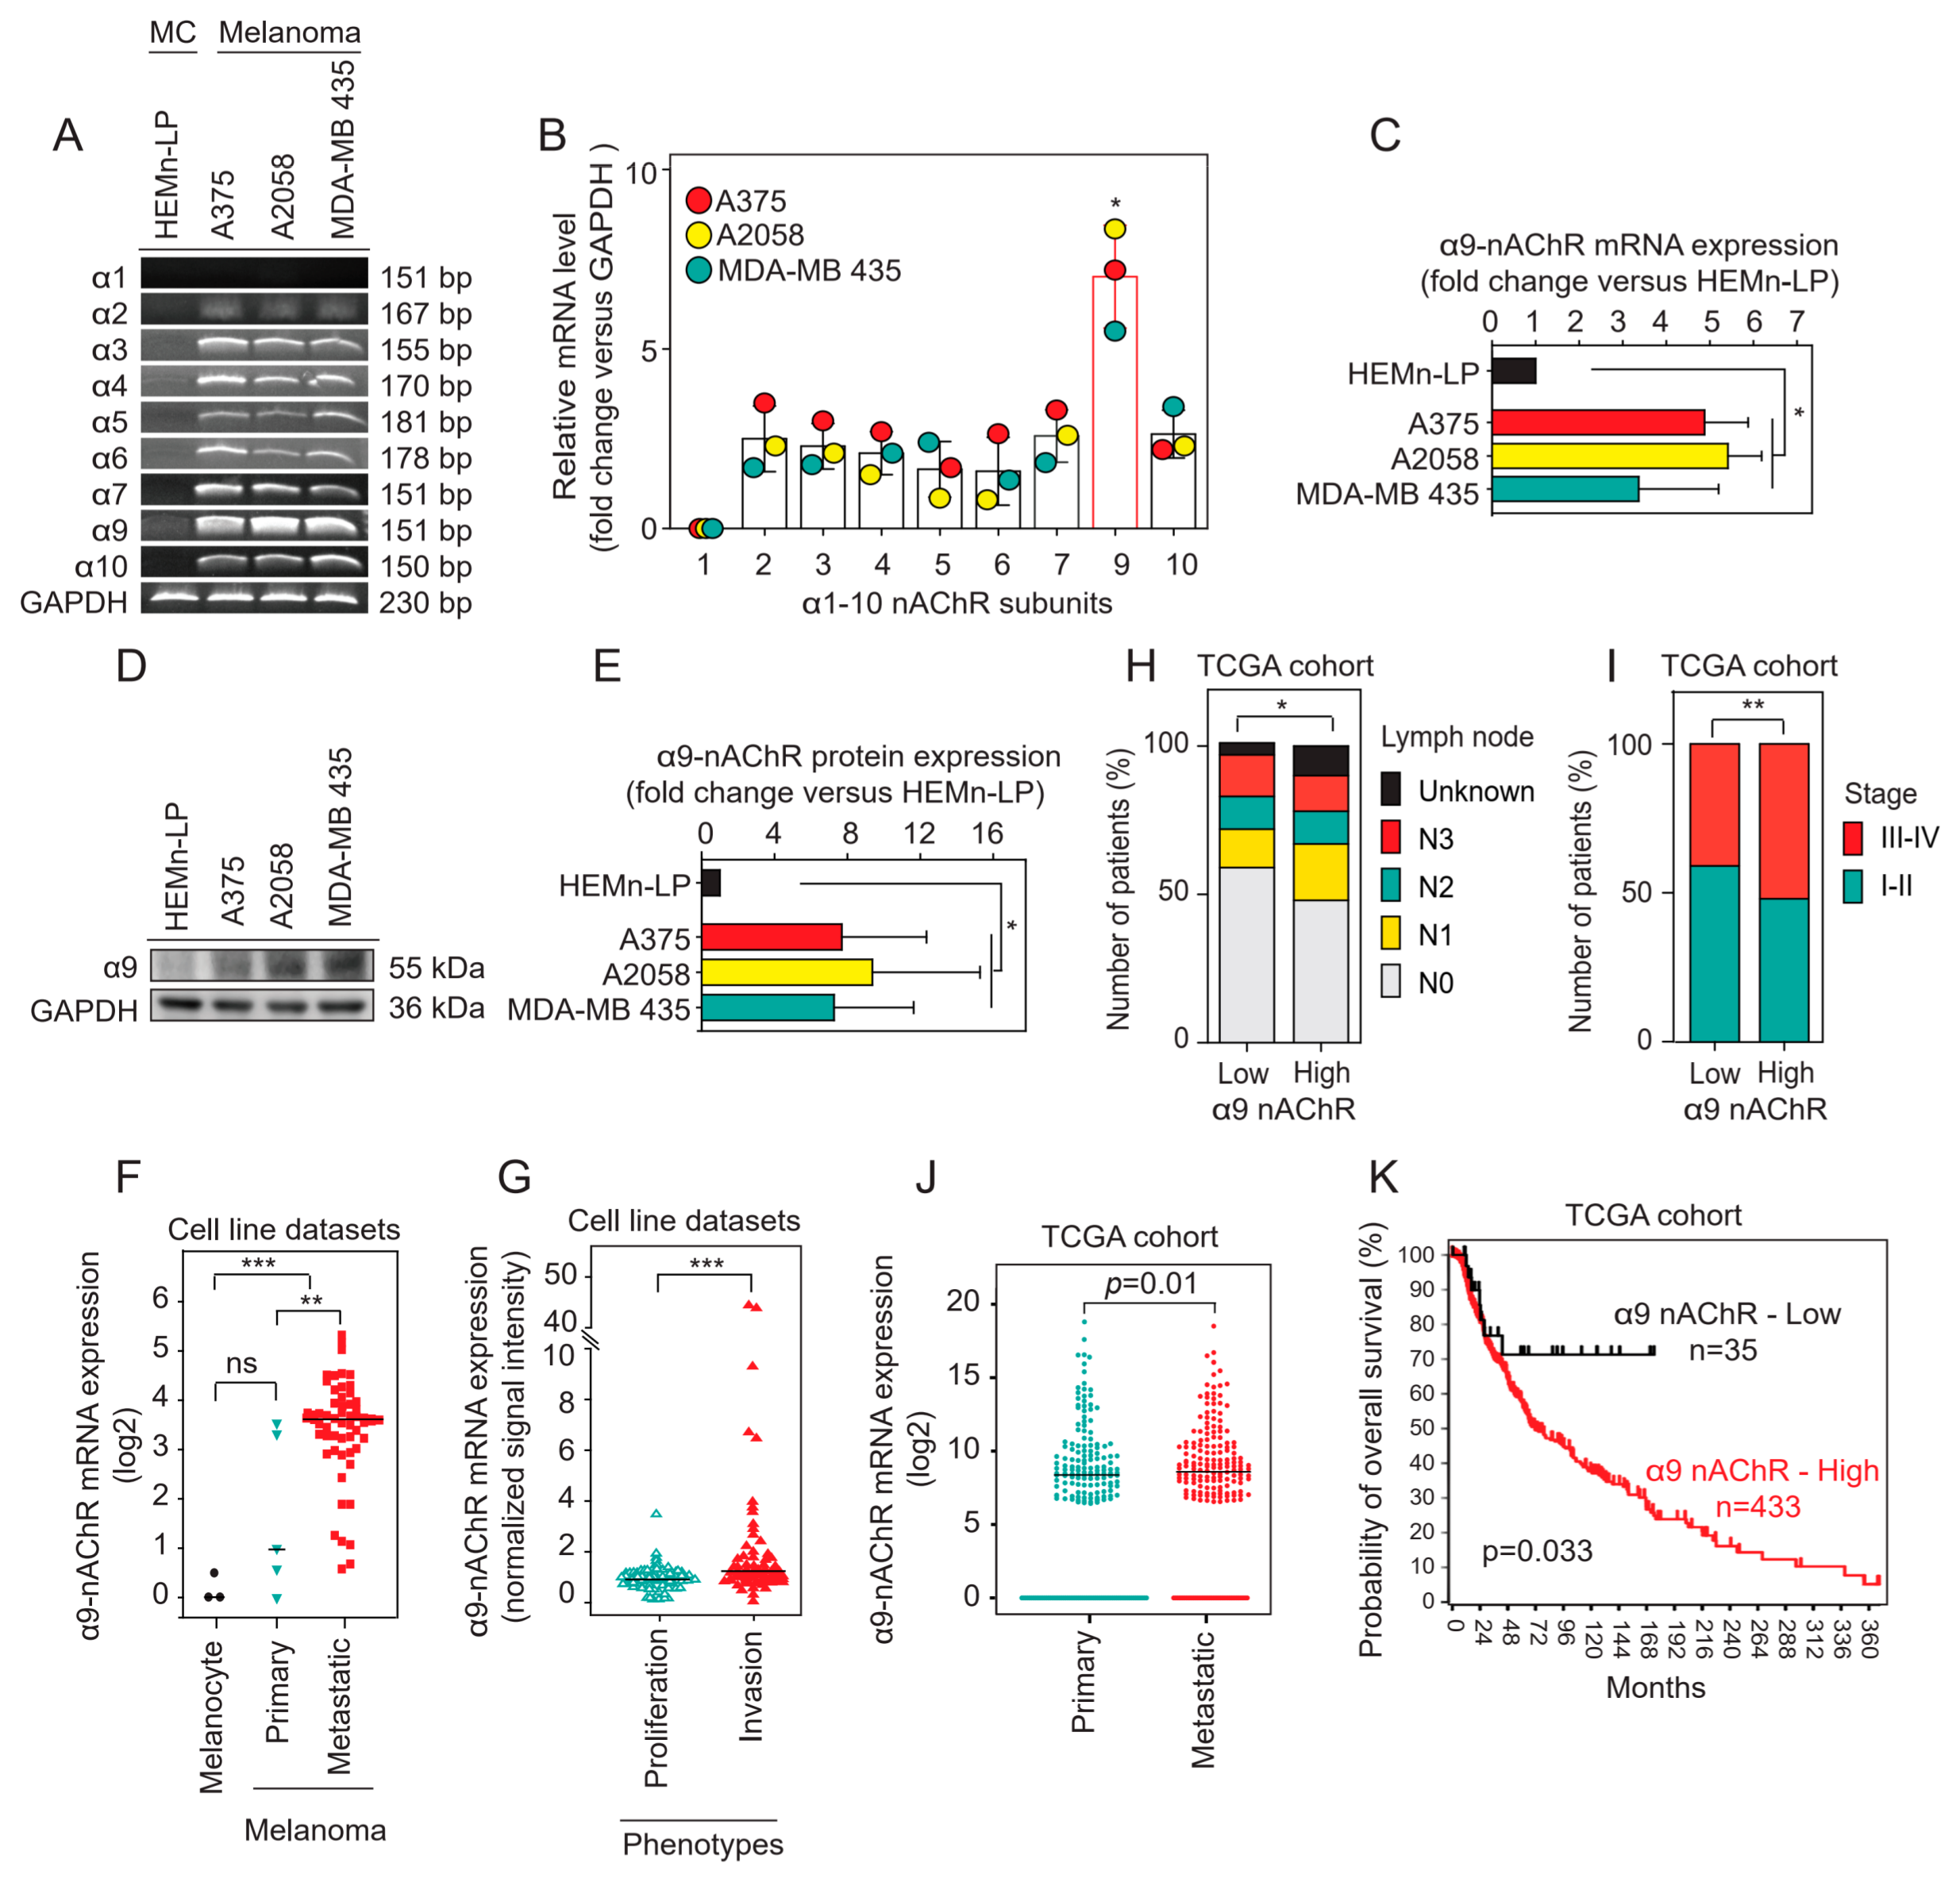 Cancers Free Full Text The A9 Nicotinic Acetylcholine Receptor Mediates Nicotine Induced Pd L1 Expression And Regulates Melanoma Cell Proliferation And Migration Html We found that twist.moe is poorly 'socialized' in. nicotinic acetylcholine receptor